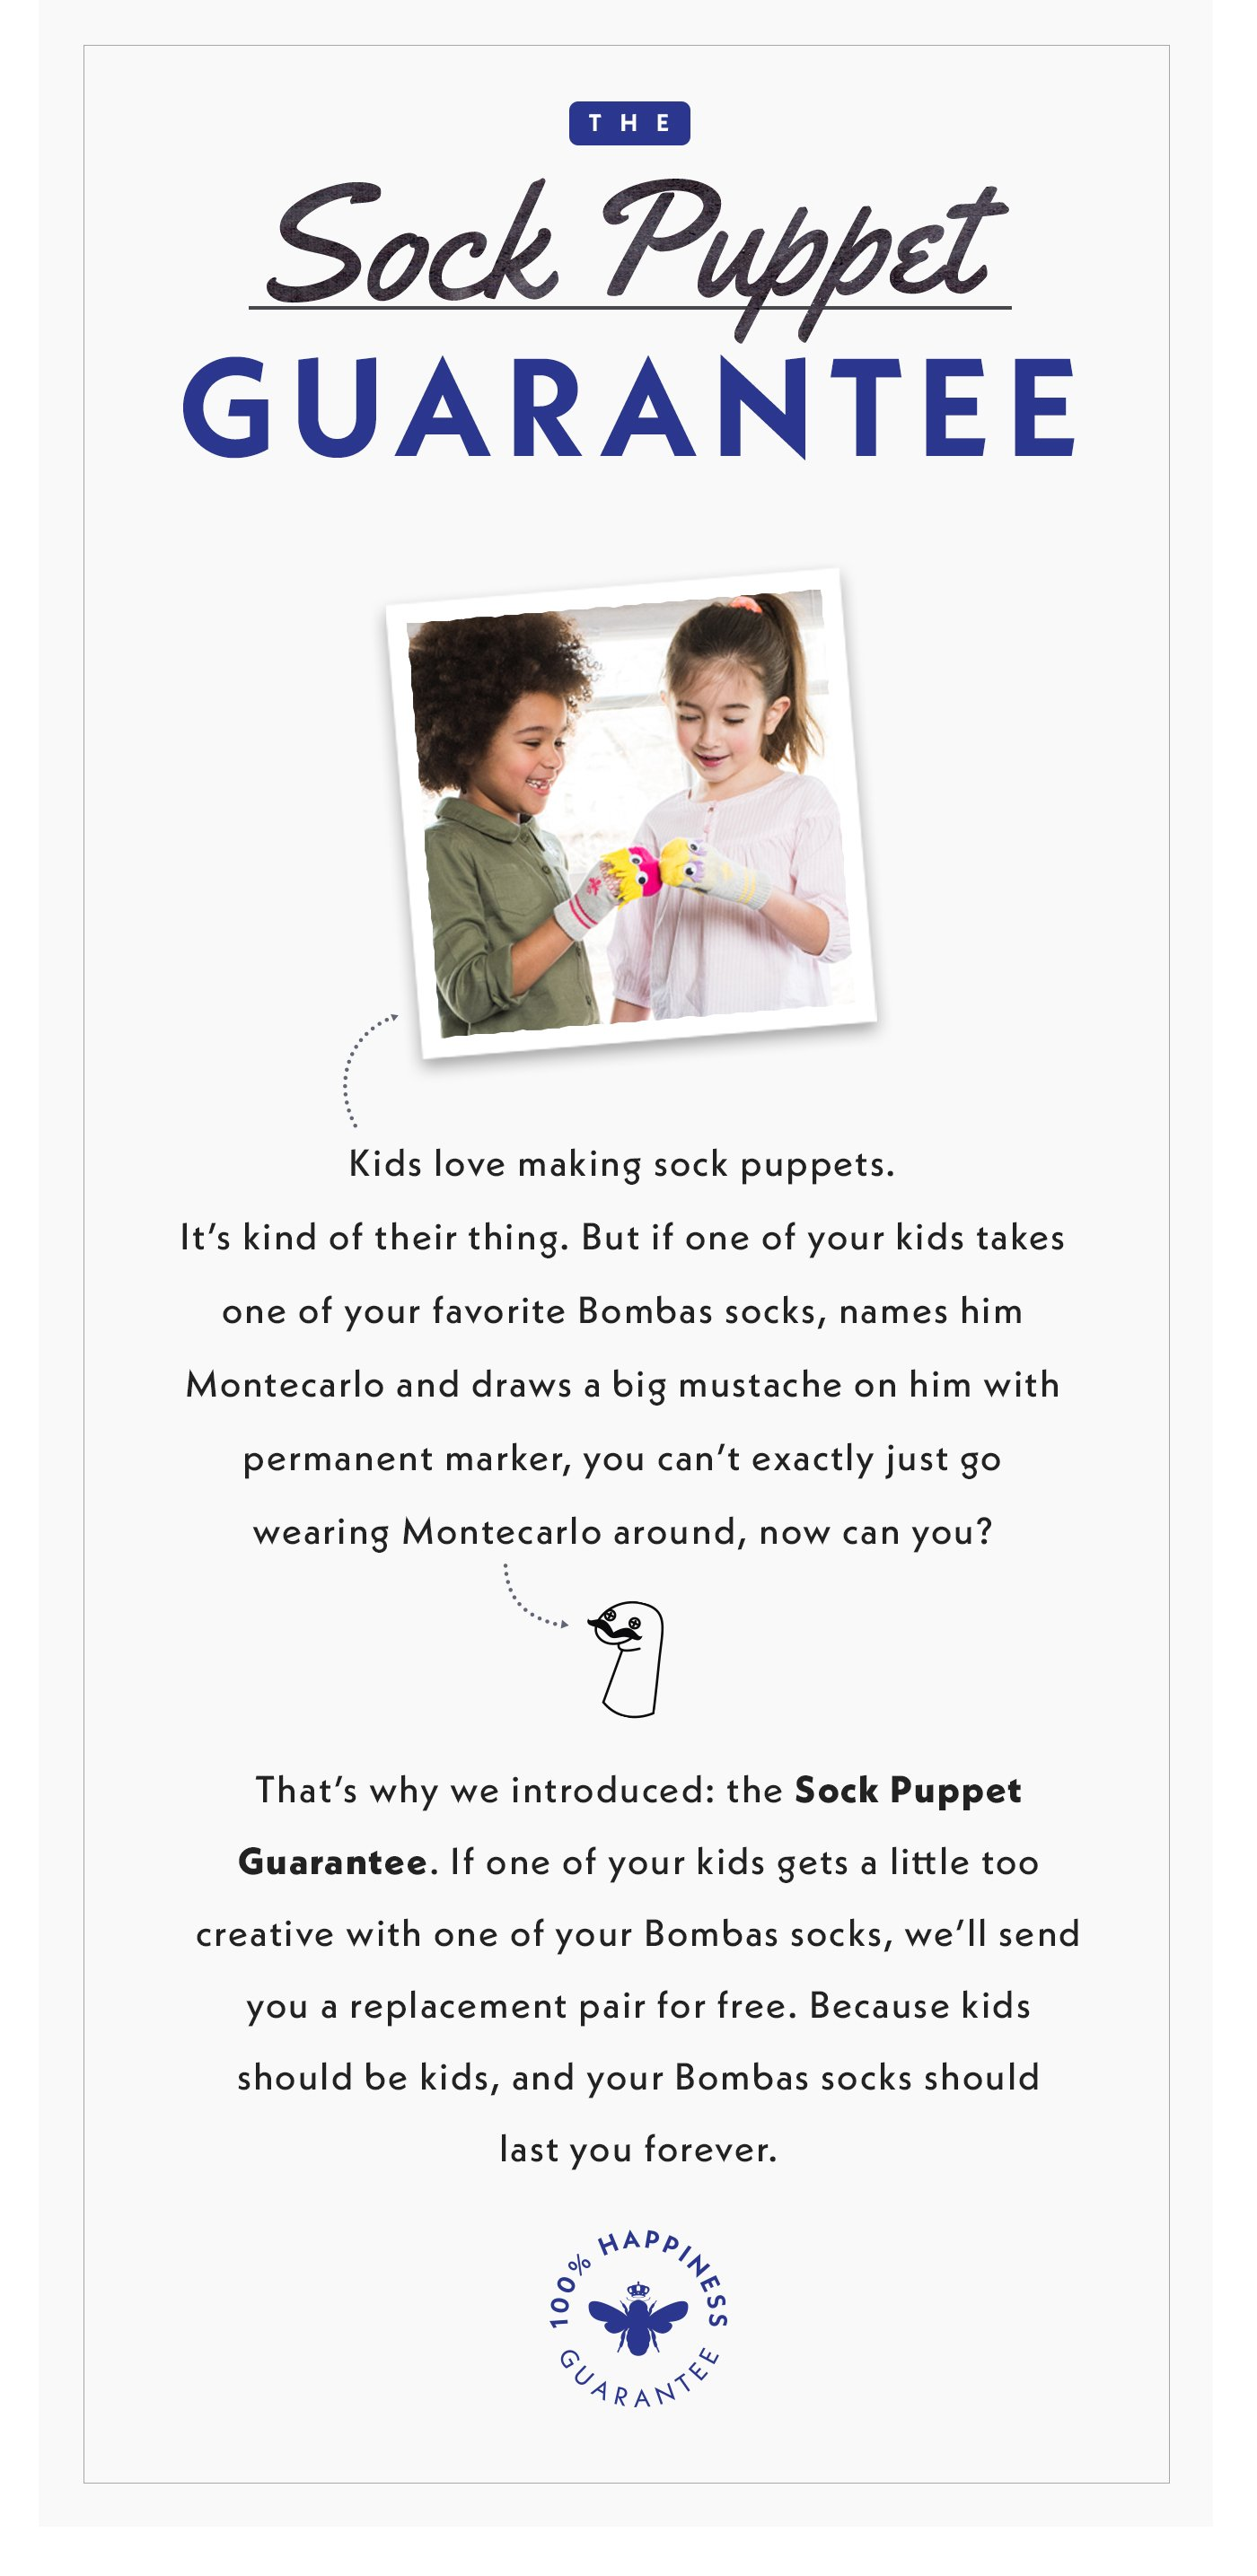 Bombas: Introducing The Sock Puppet Guarantee | Milled